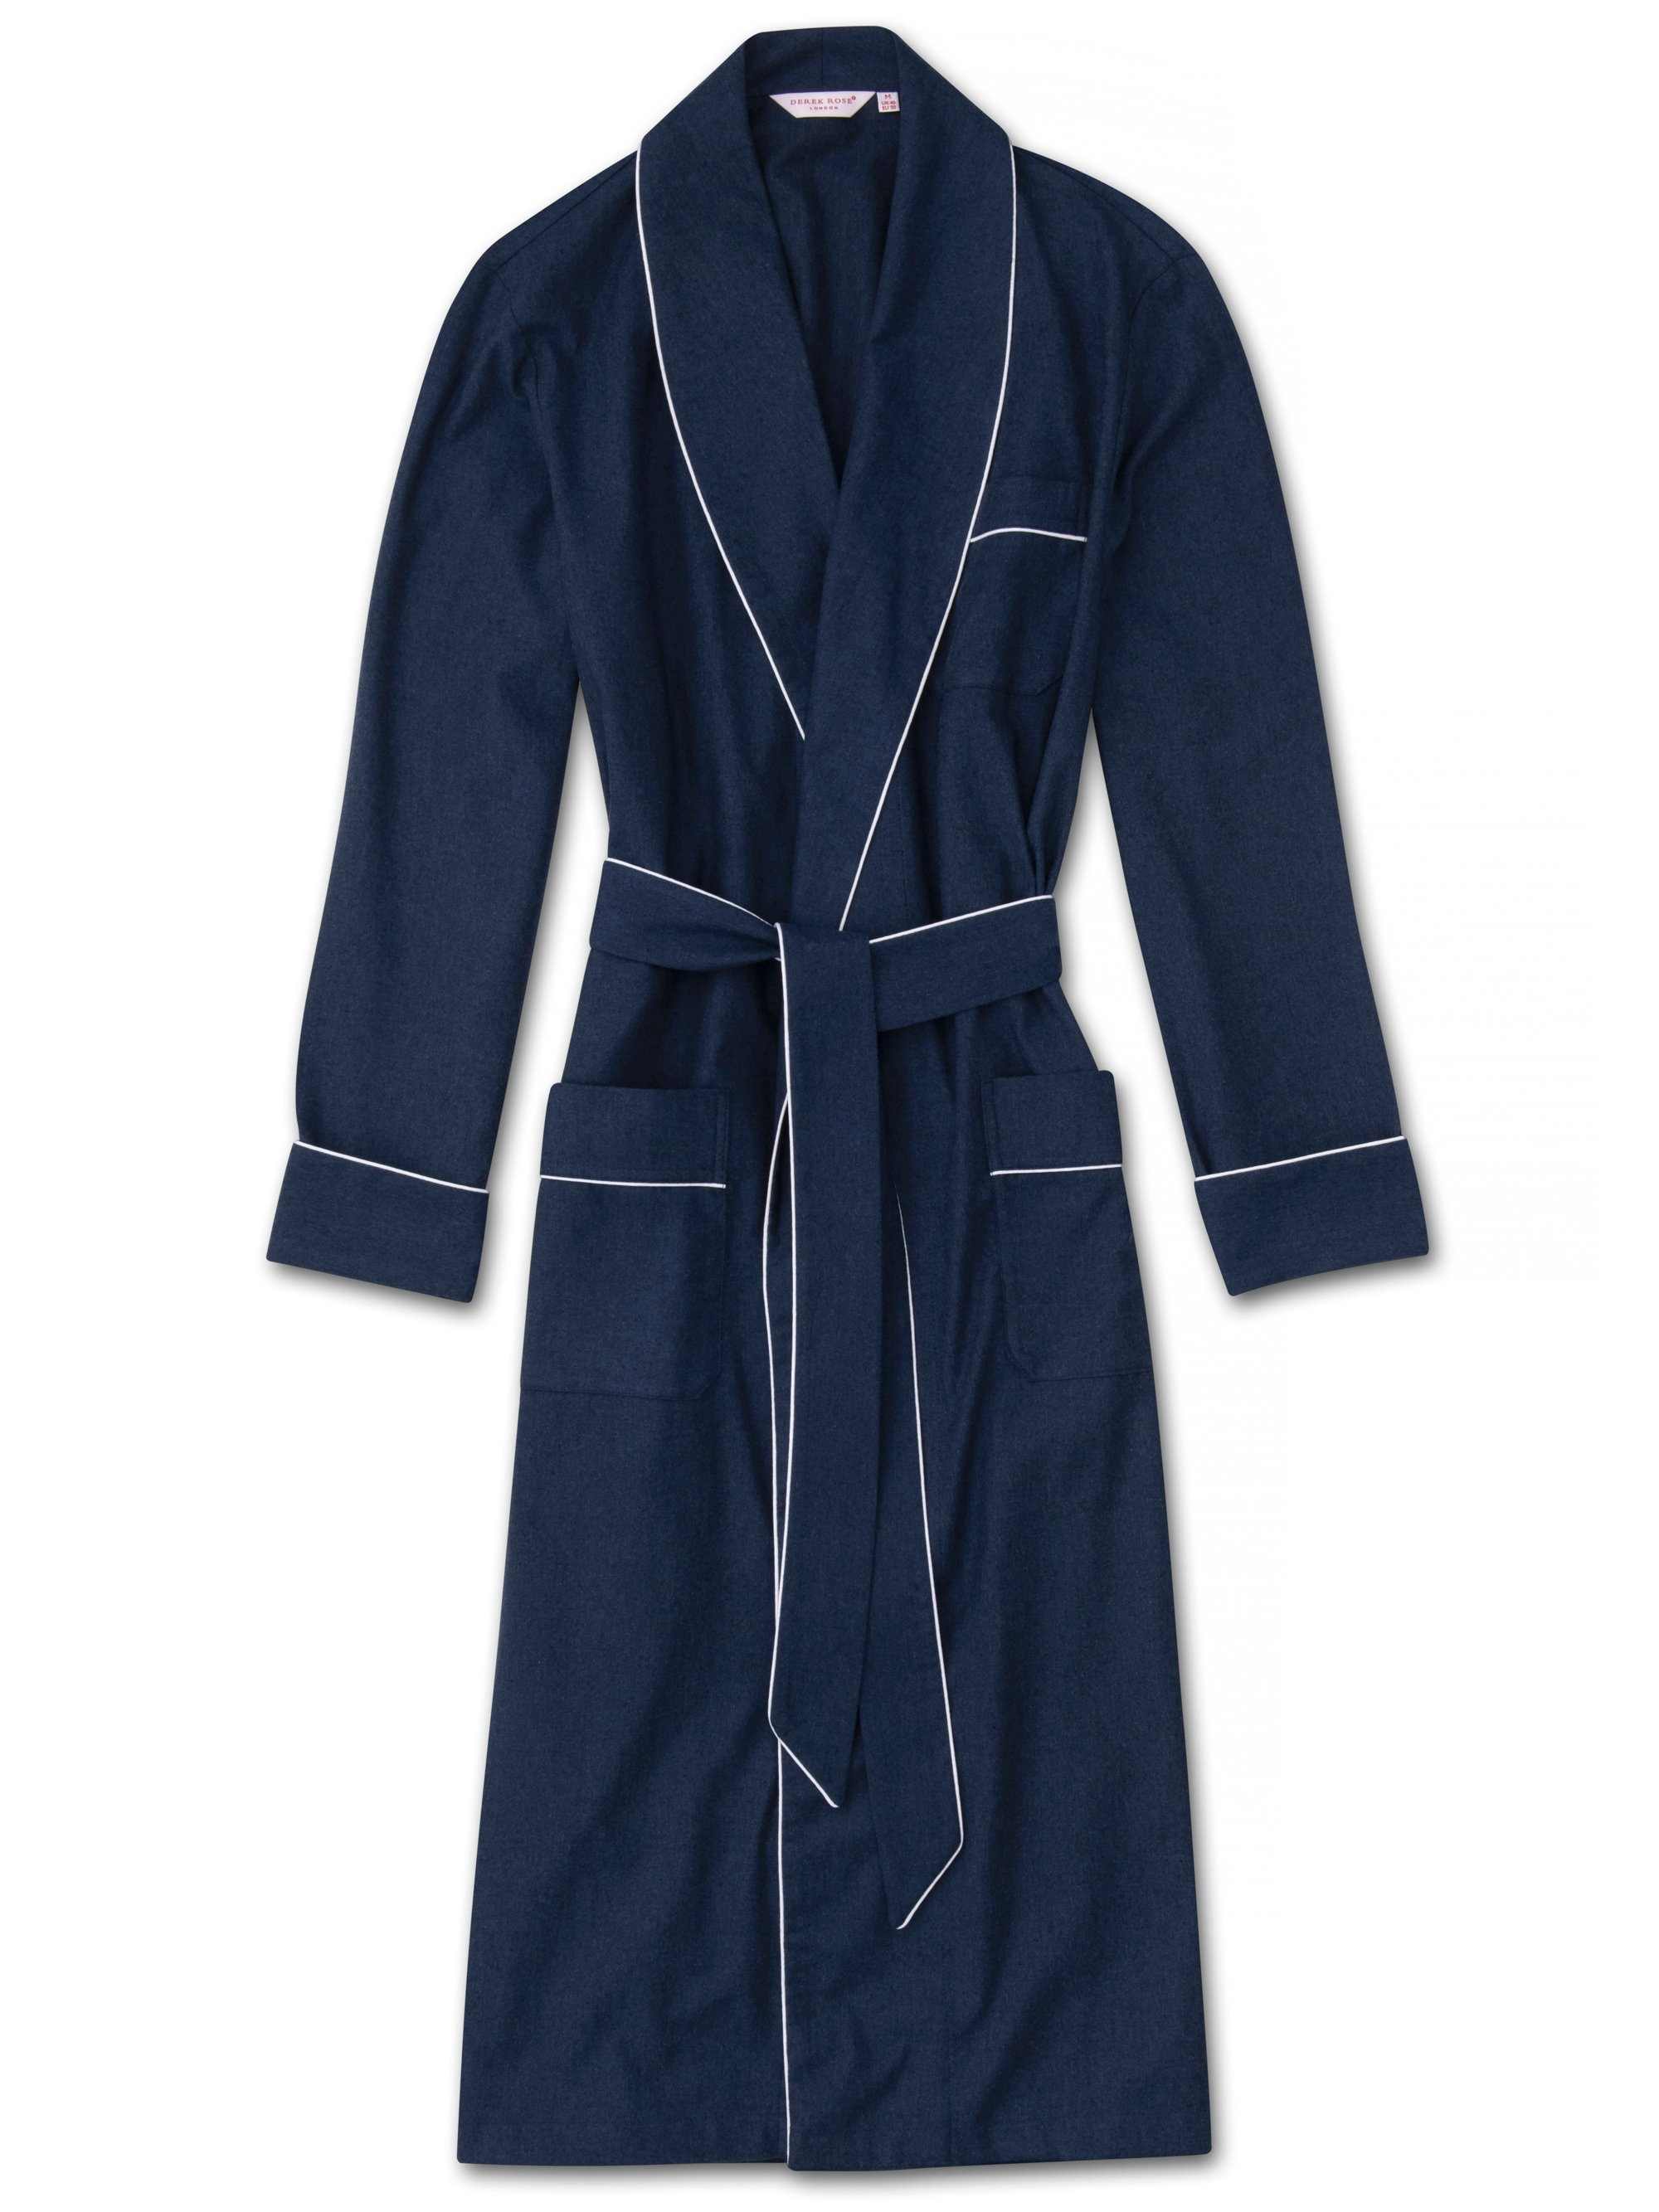 Men's Piped Dressing Gown Balmoral 3 Brushed Cotton Navy